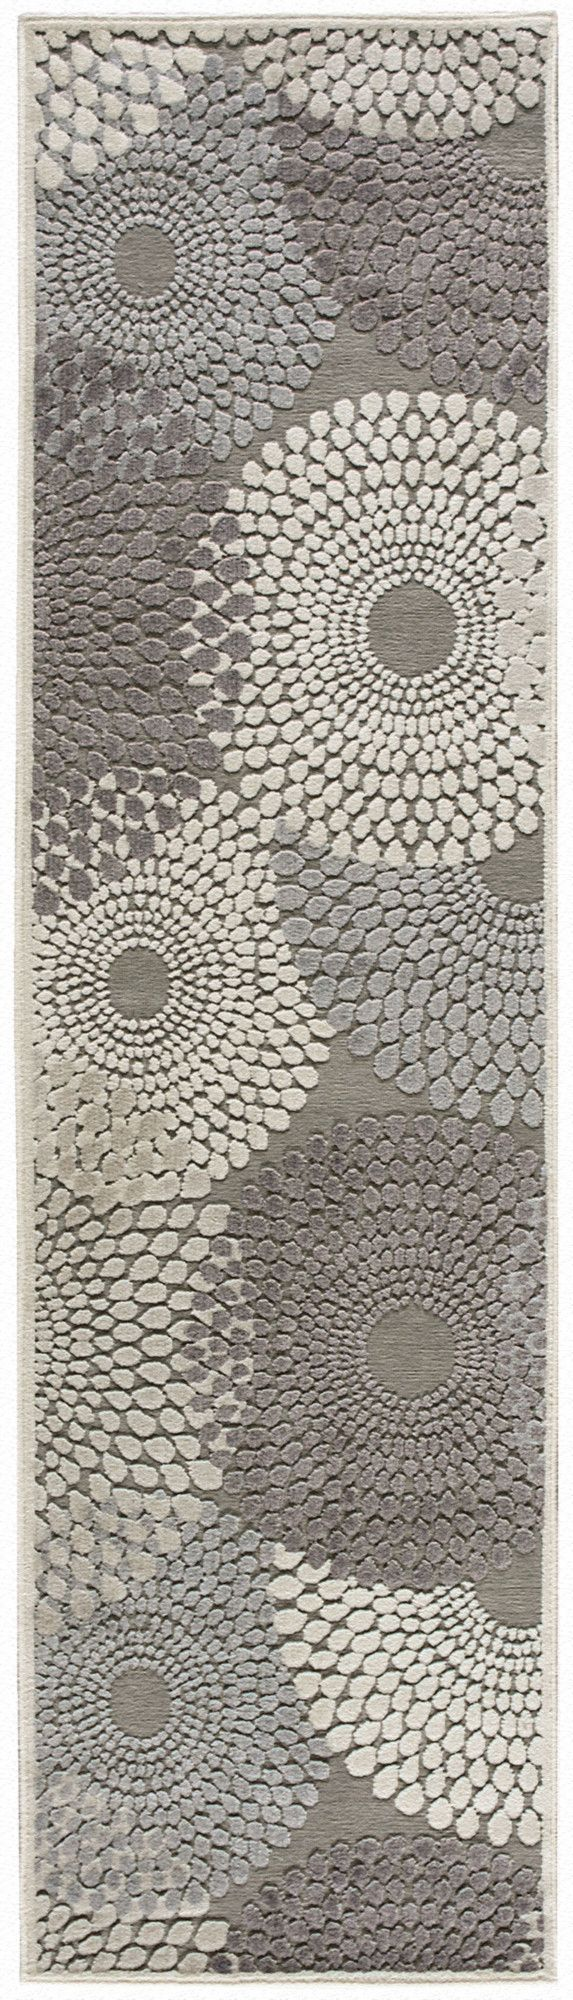 Best Bathroom Mat Ideas On Pinterest Bath Rugs Mats Bath - Grey bath rugs for bathroom decorating ideas